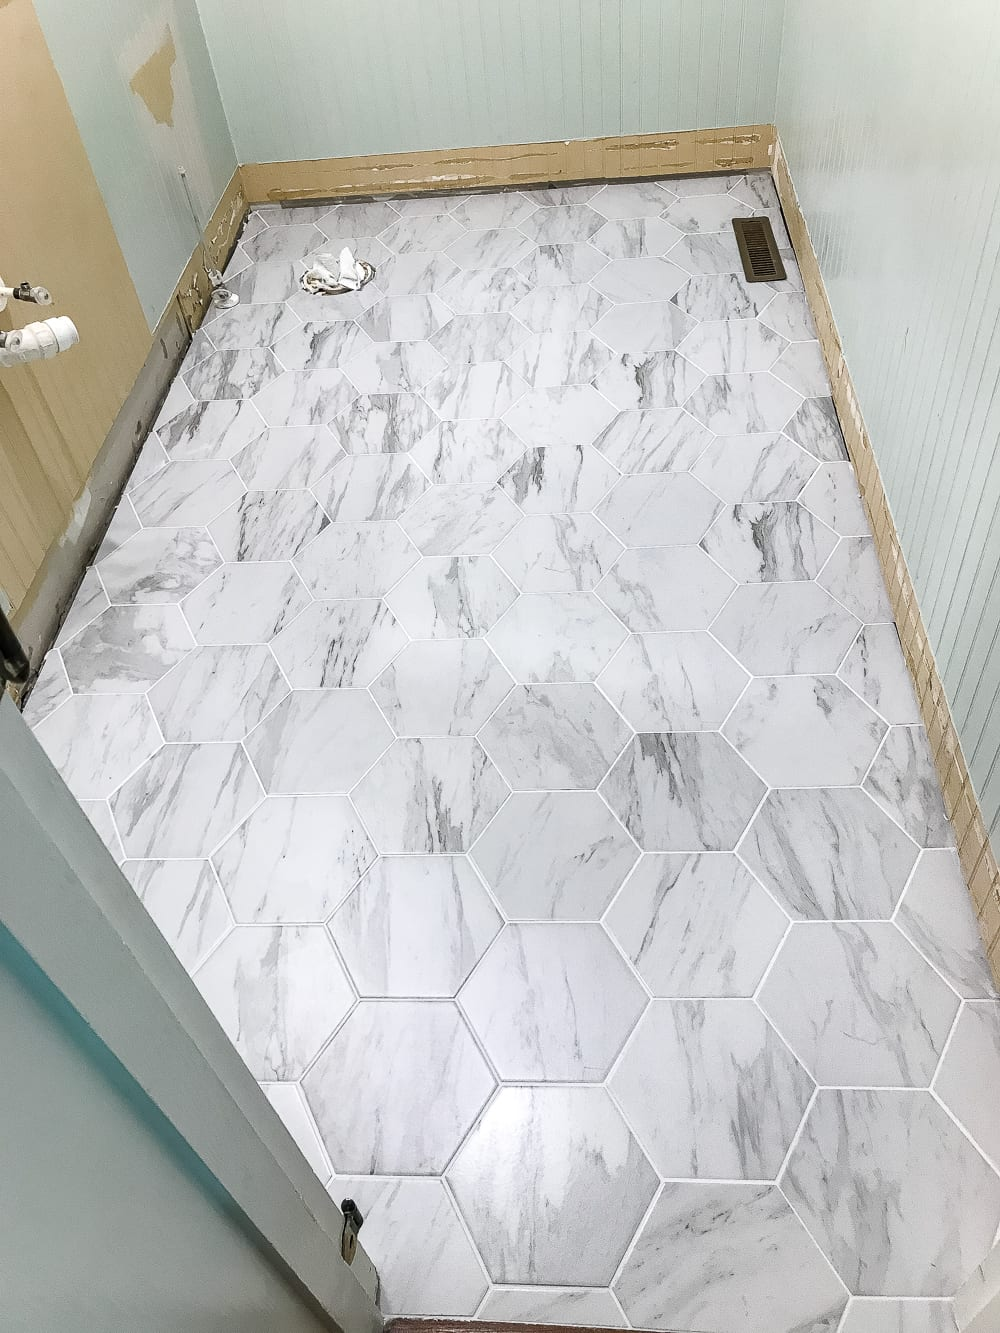 The Best Faux Marble Tile Blesserhouse A Dated Powder Room Floor Gets